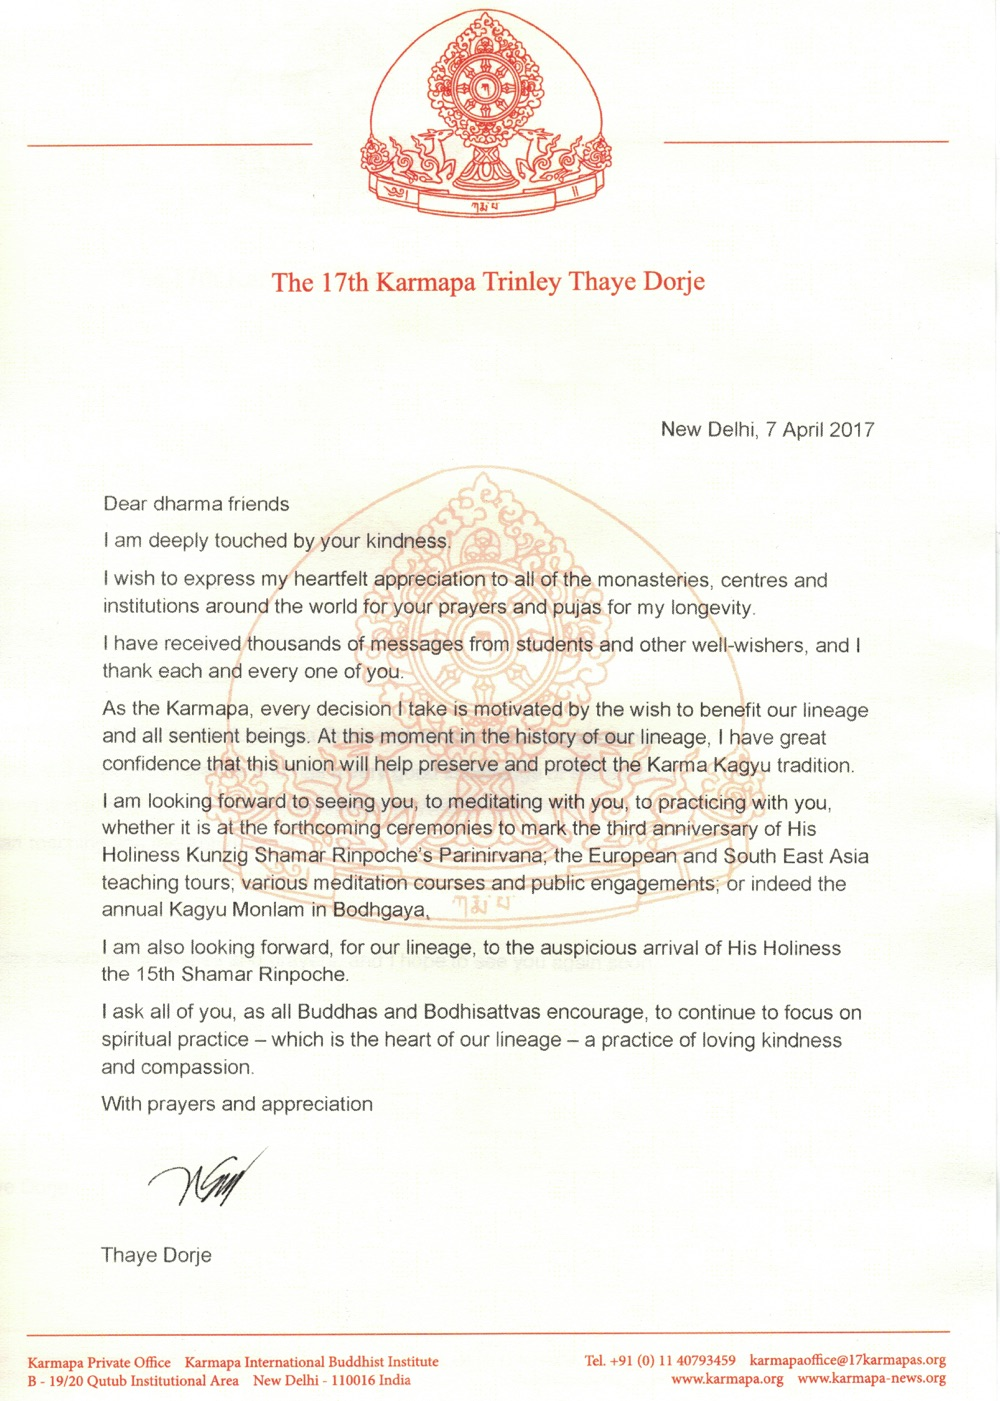 a letter of appreciation from the th official letter of appreciation from thaye dorje his holiness the 17th gyalwa karmapa